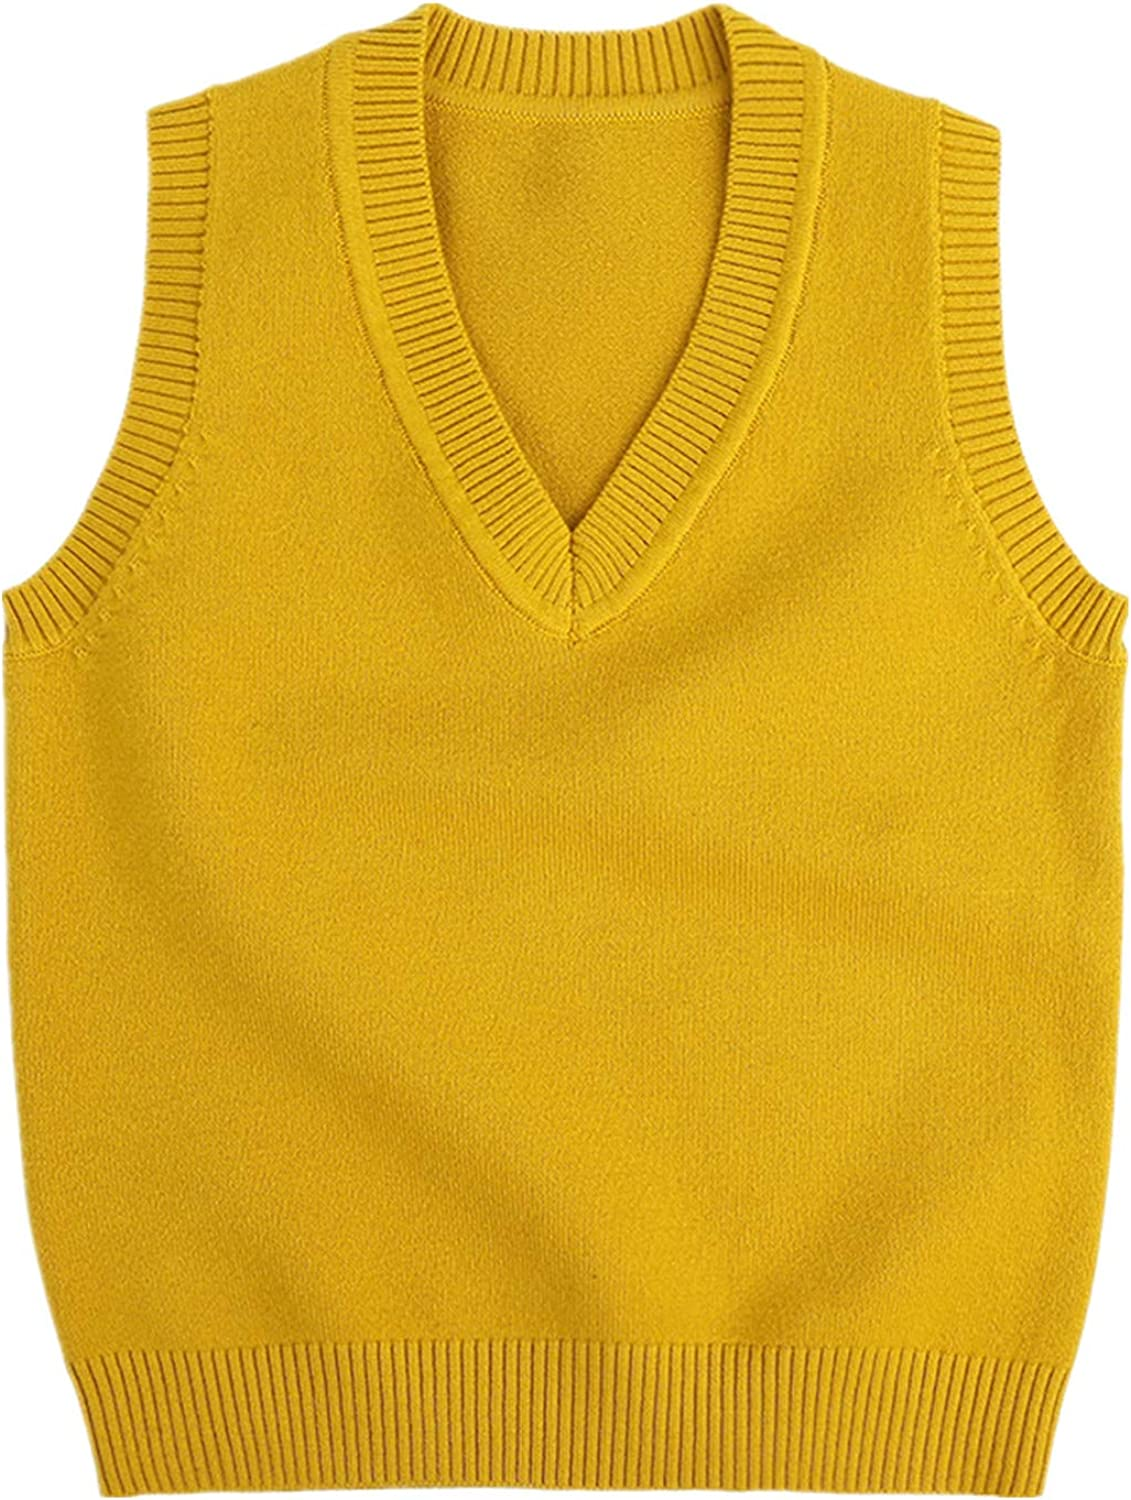 Maylofuer Little Boys Vest Sweater V-Neck Solid Color